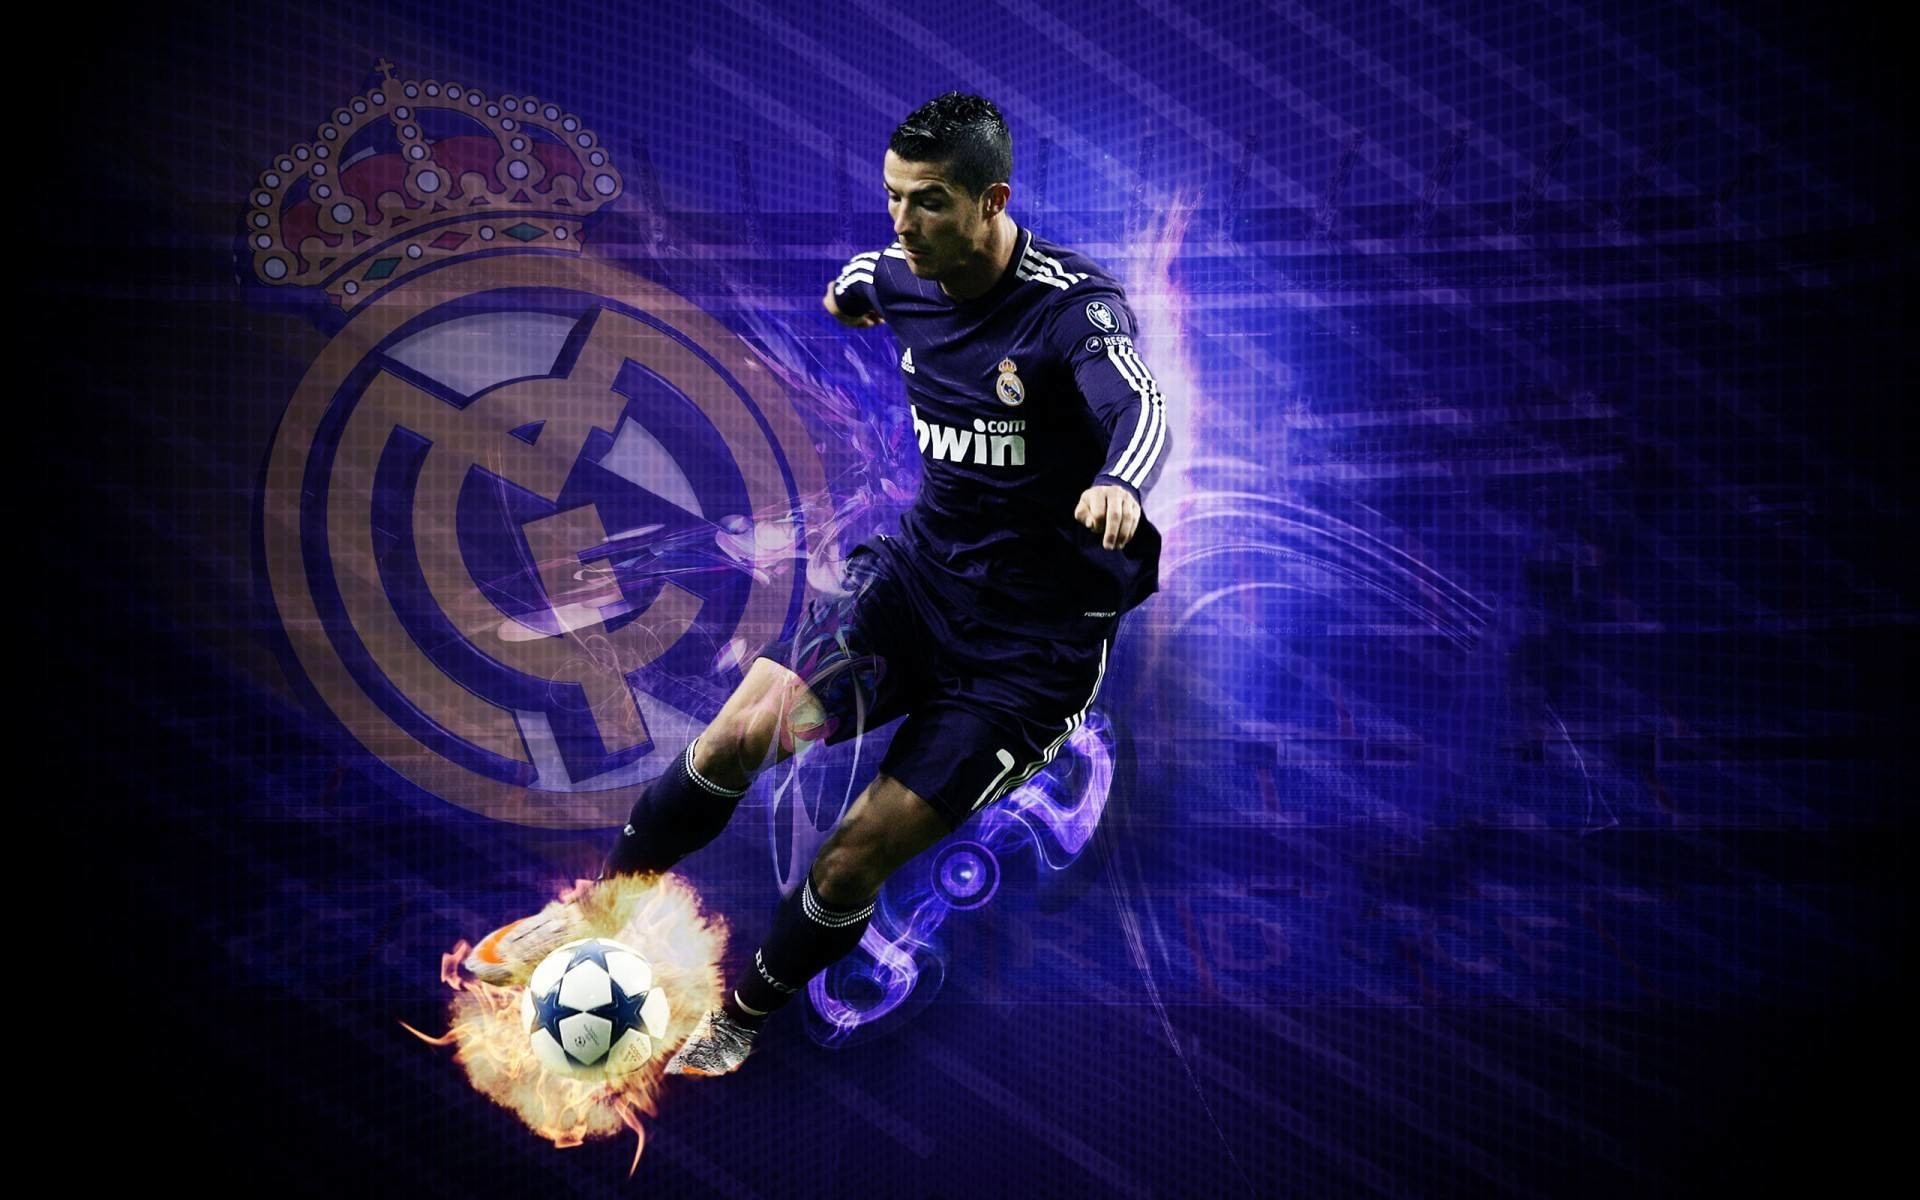 1920x1200 wallpaper.wiki-Cool-Soccer-Wallpaper-PIC-WPD009911